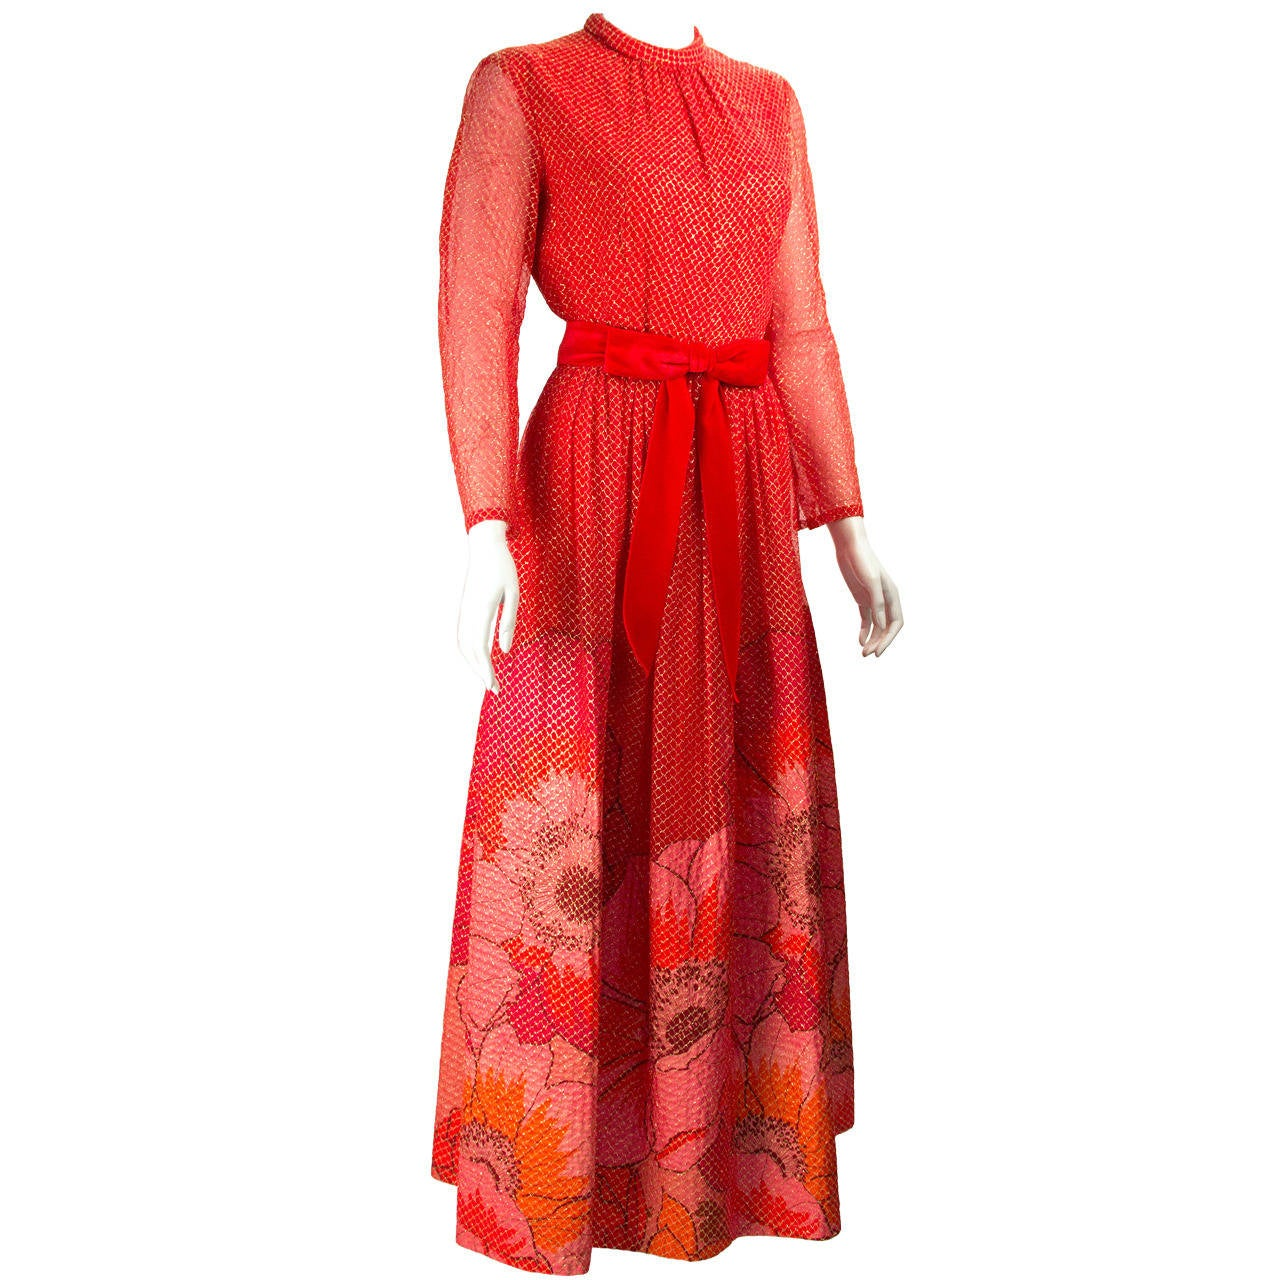 1970s Mollie Parnis Red and Gold  Dress